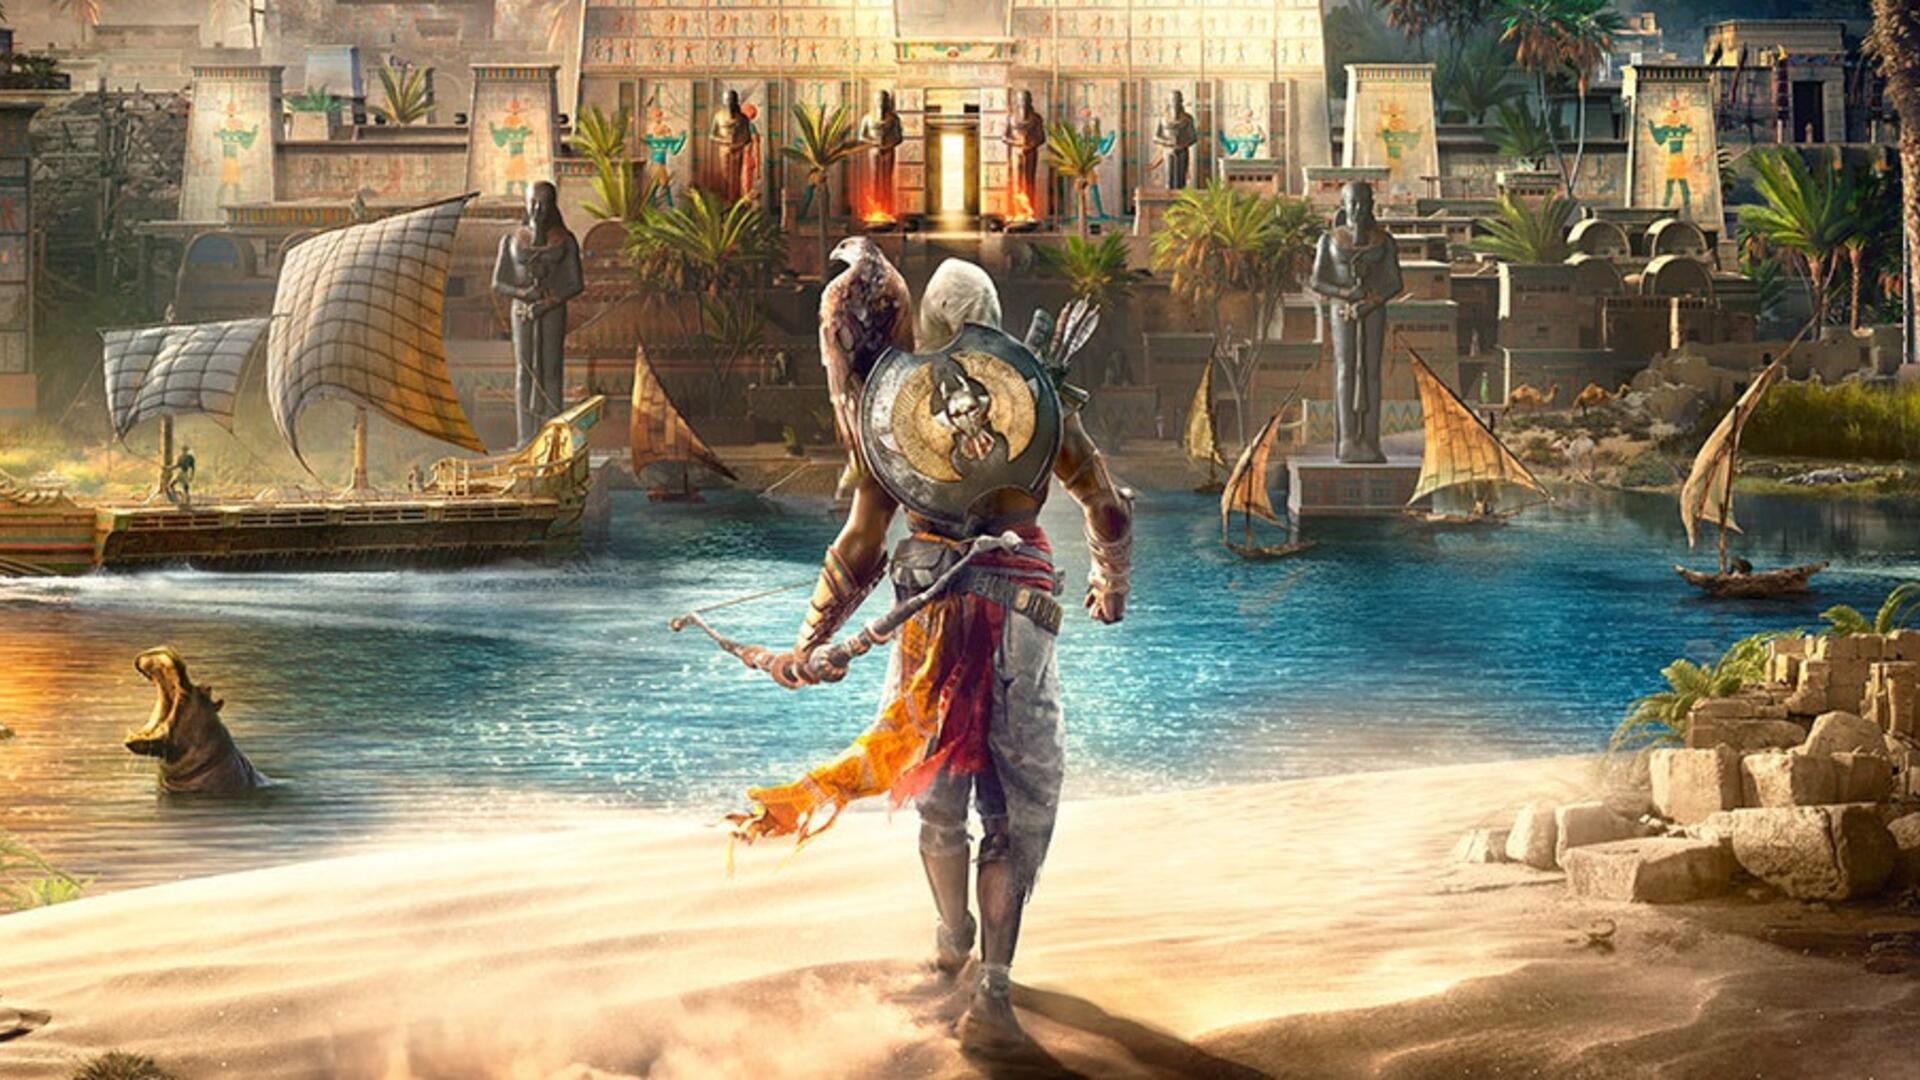 Assassin's Creed Origins Guide - How to Earn Money and Level Up Quickly